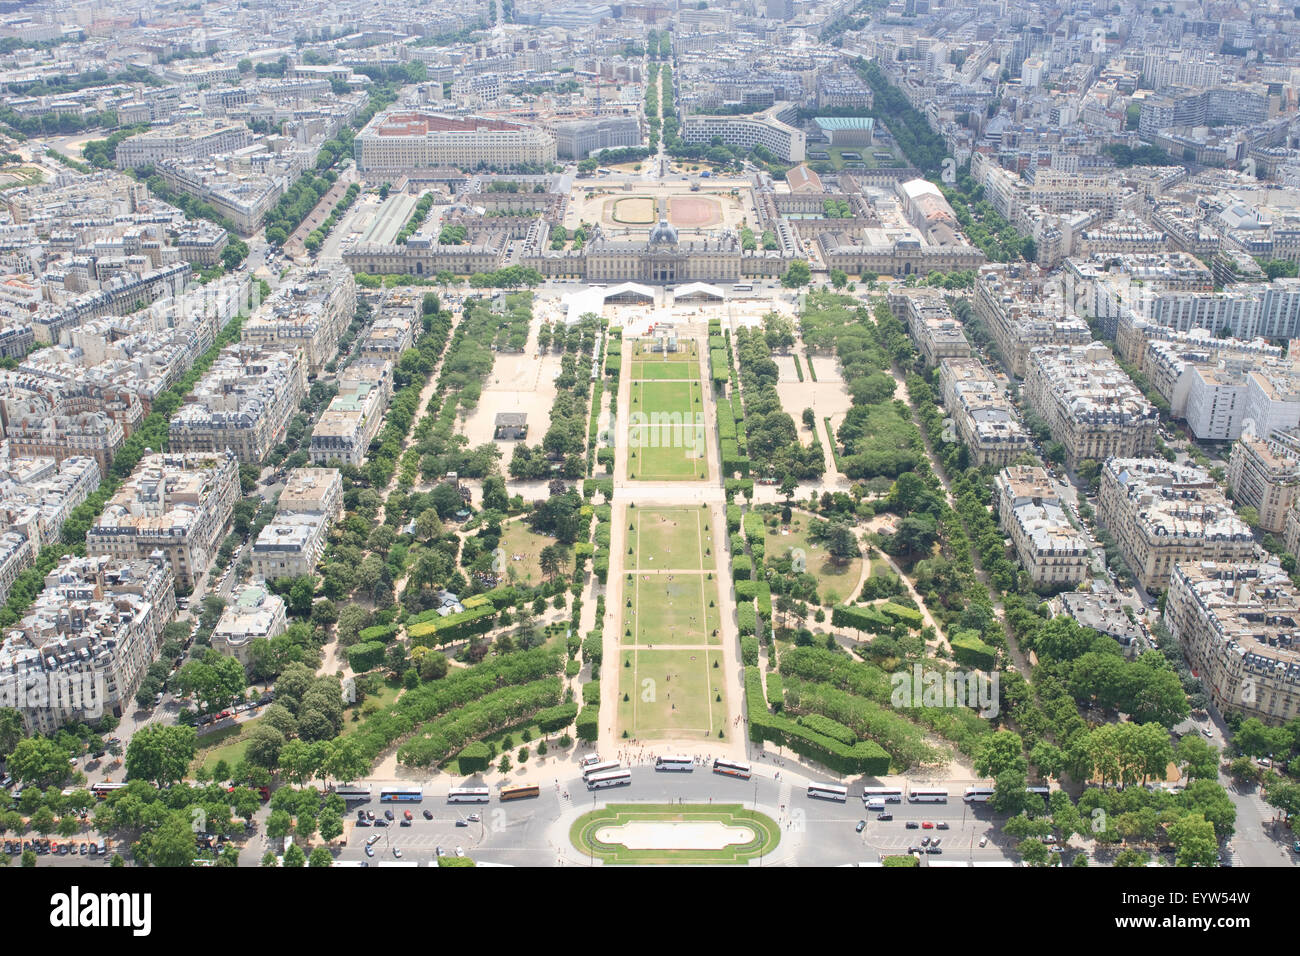 View South East from the top of the Eiffel Tower, down the Champ de Mars with  École Militaire in the background. - Stock Image